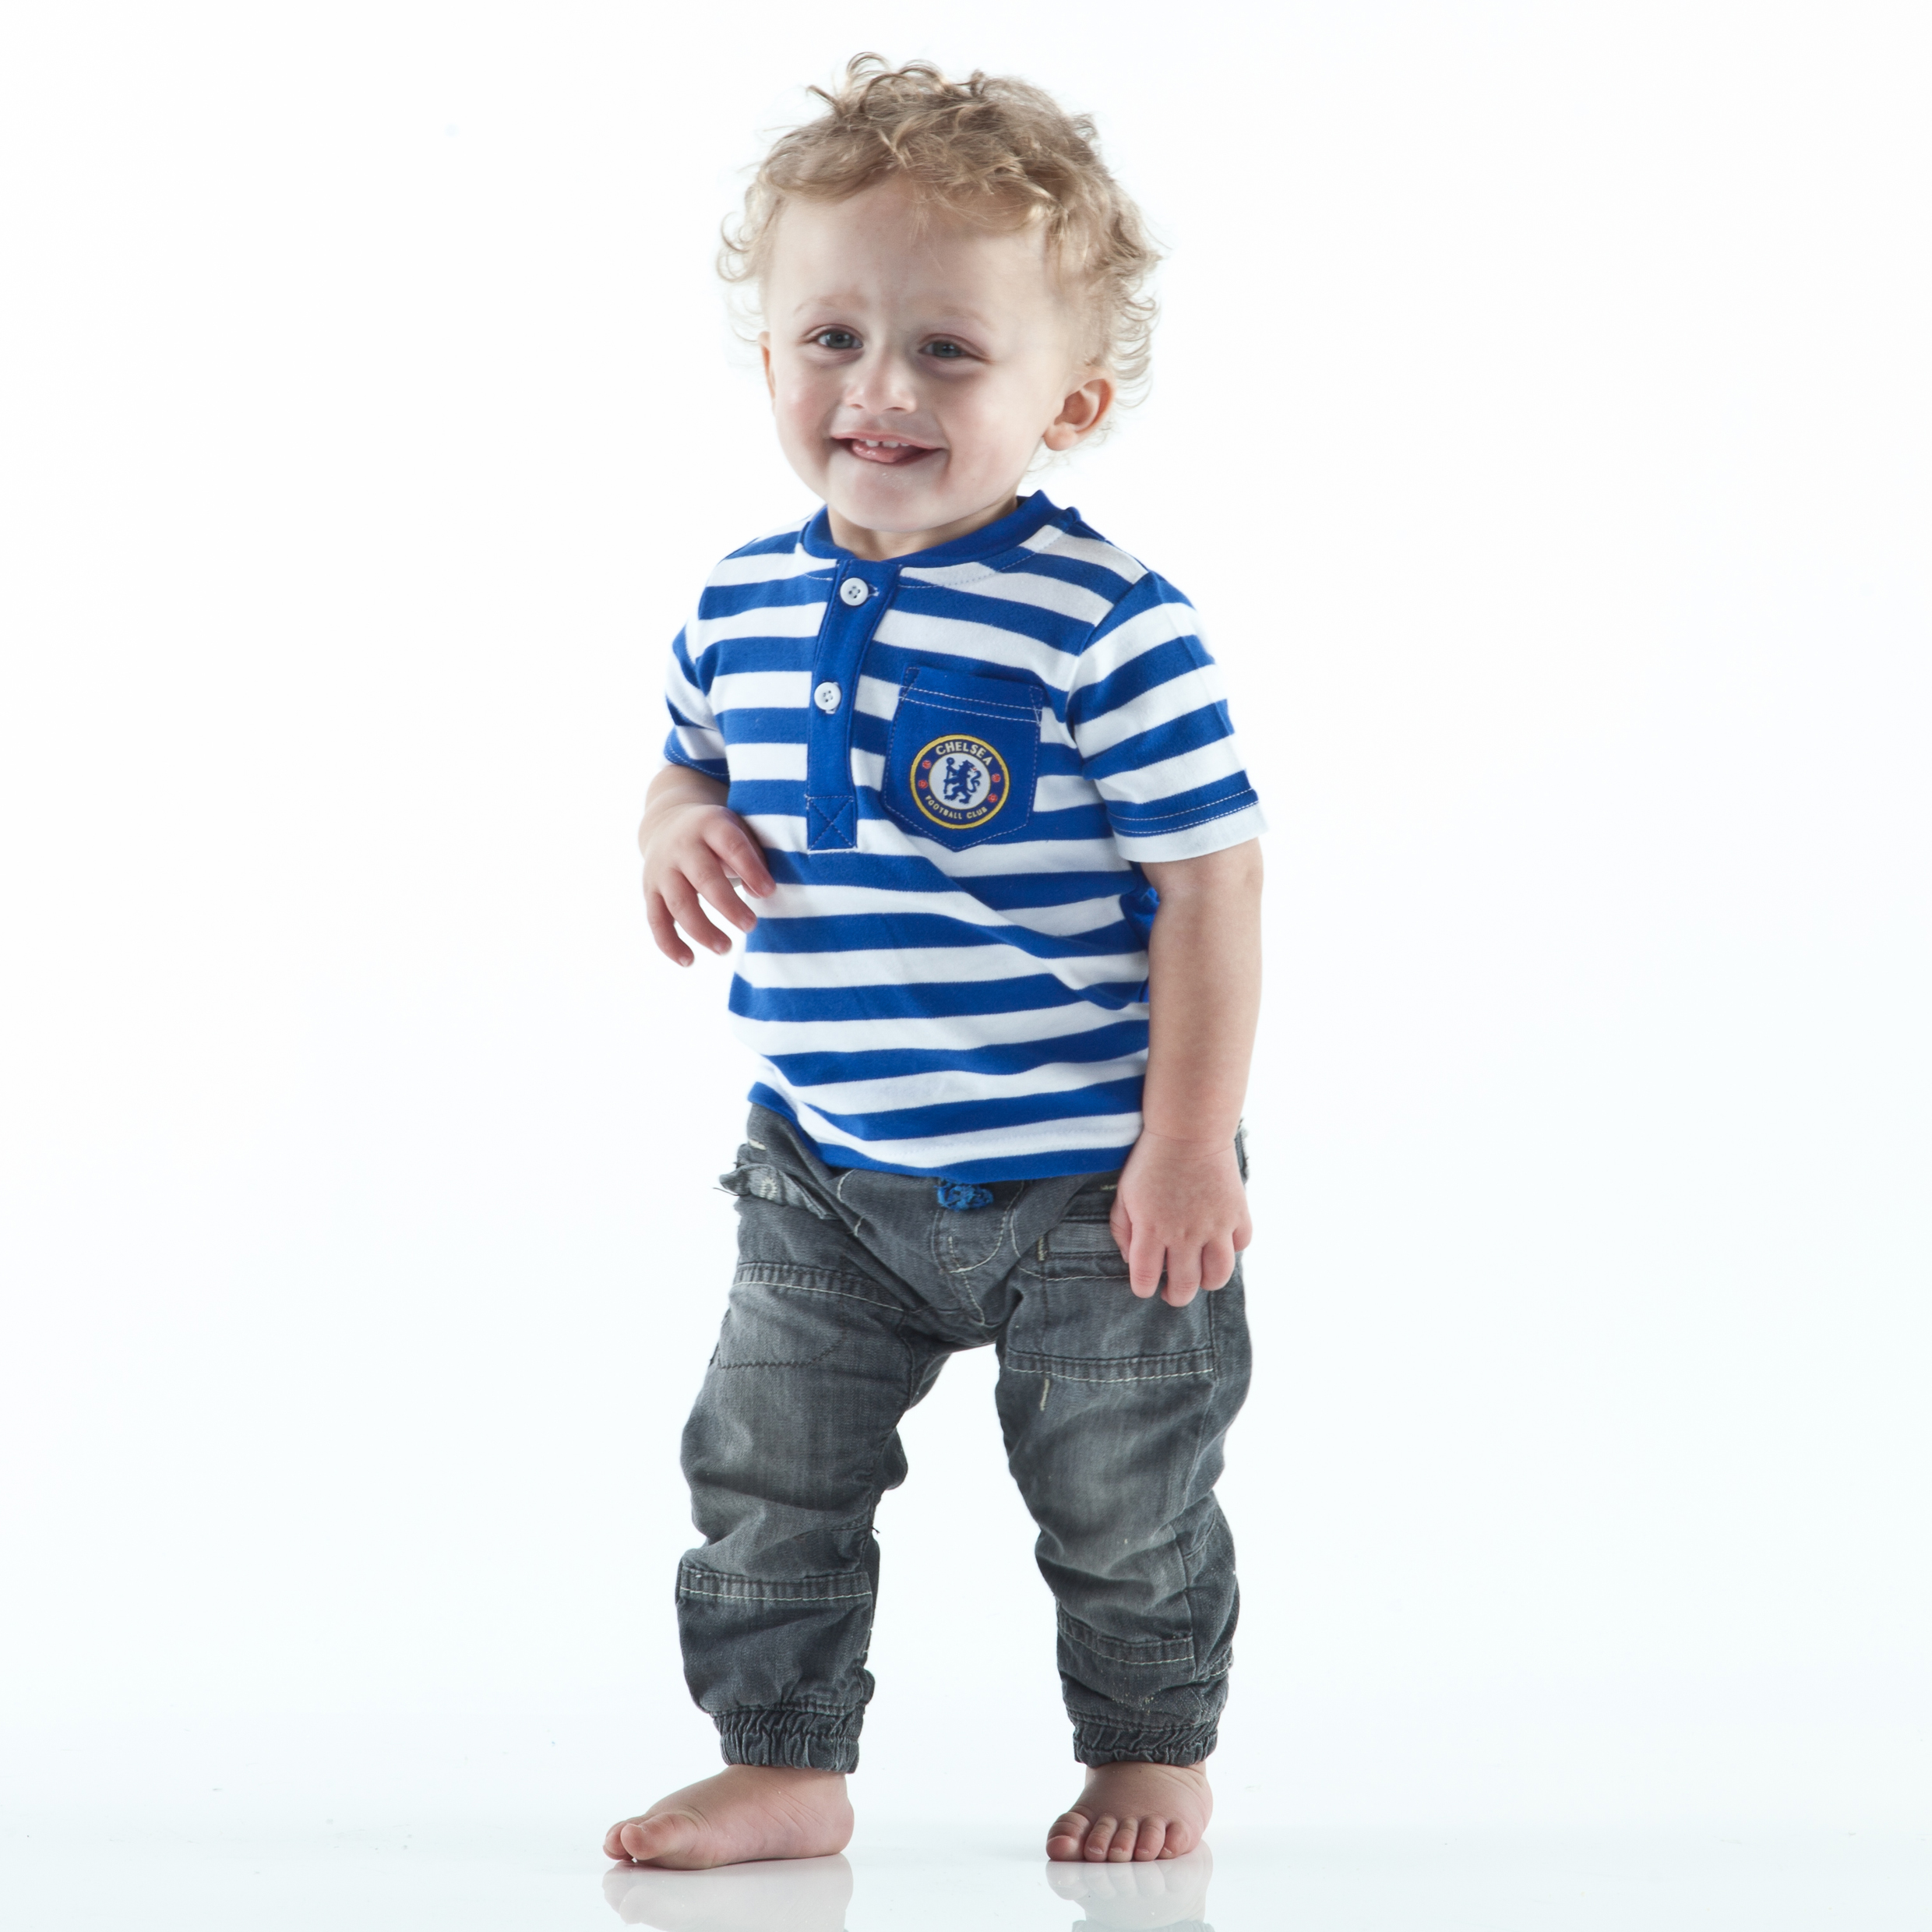 Chelsea Striped T-Shirt - Reflex Blue/White - Baby Boys